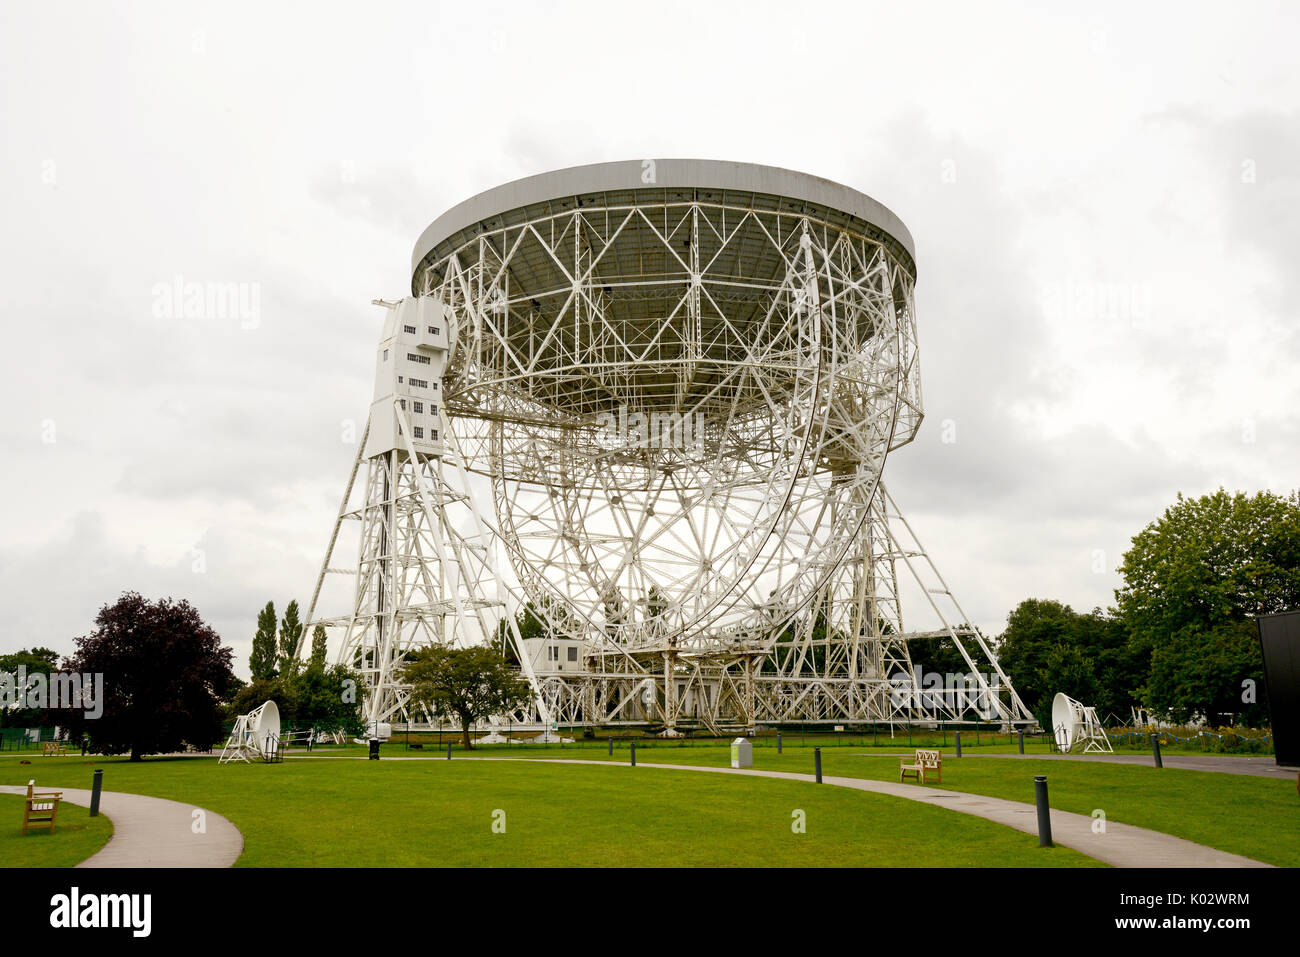 The Jodrell Bank Observatory radio telescope in Cheshire, England, which is part of the Astrophysics Dept at the University of Manchester. - Stock Image